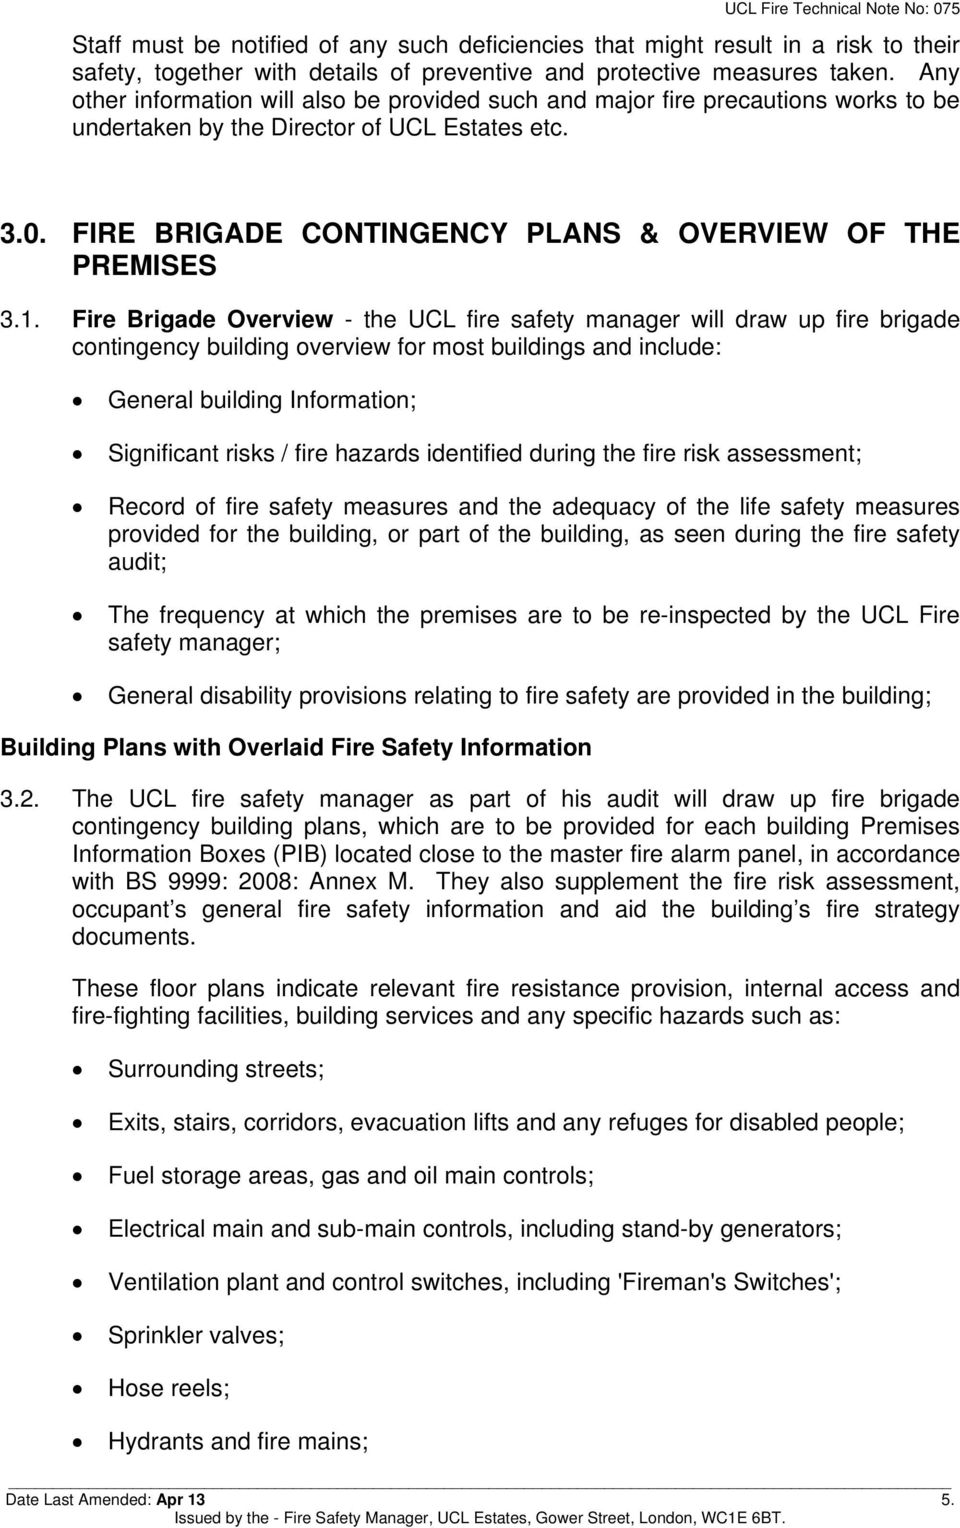 1. Fire Brigade Overview - the UCL fire safety manager will draw up fire brigade contingency building overview for most buildings and include: General building Information; Significant risks / fire